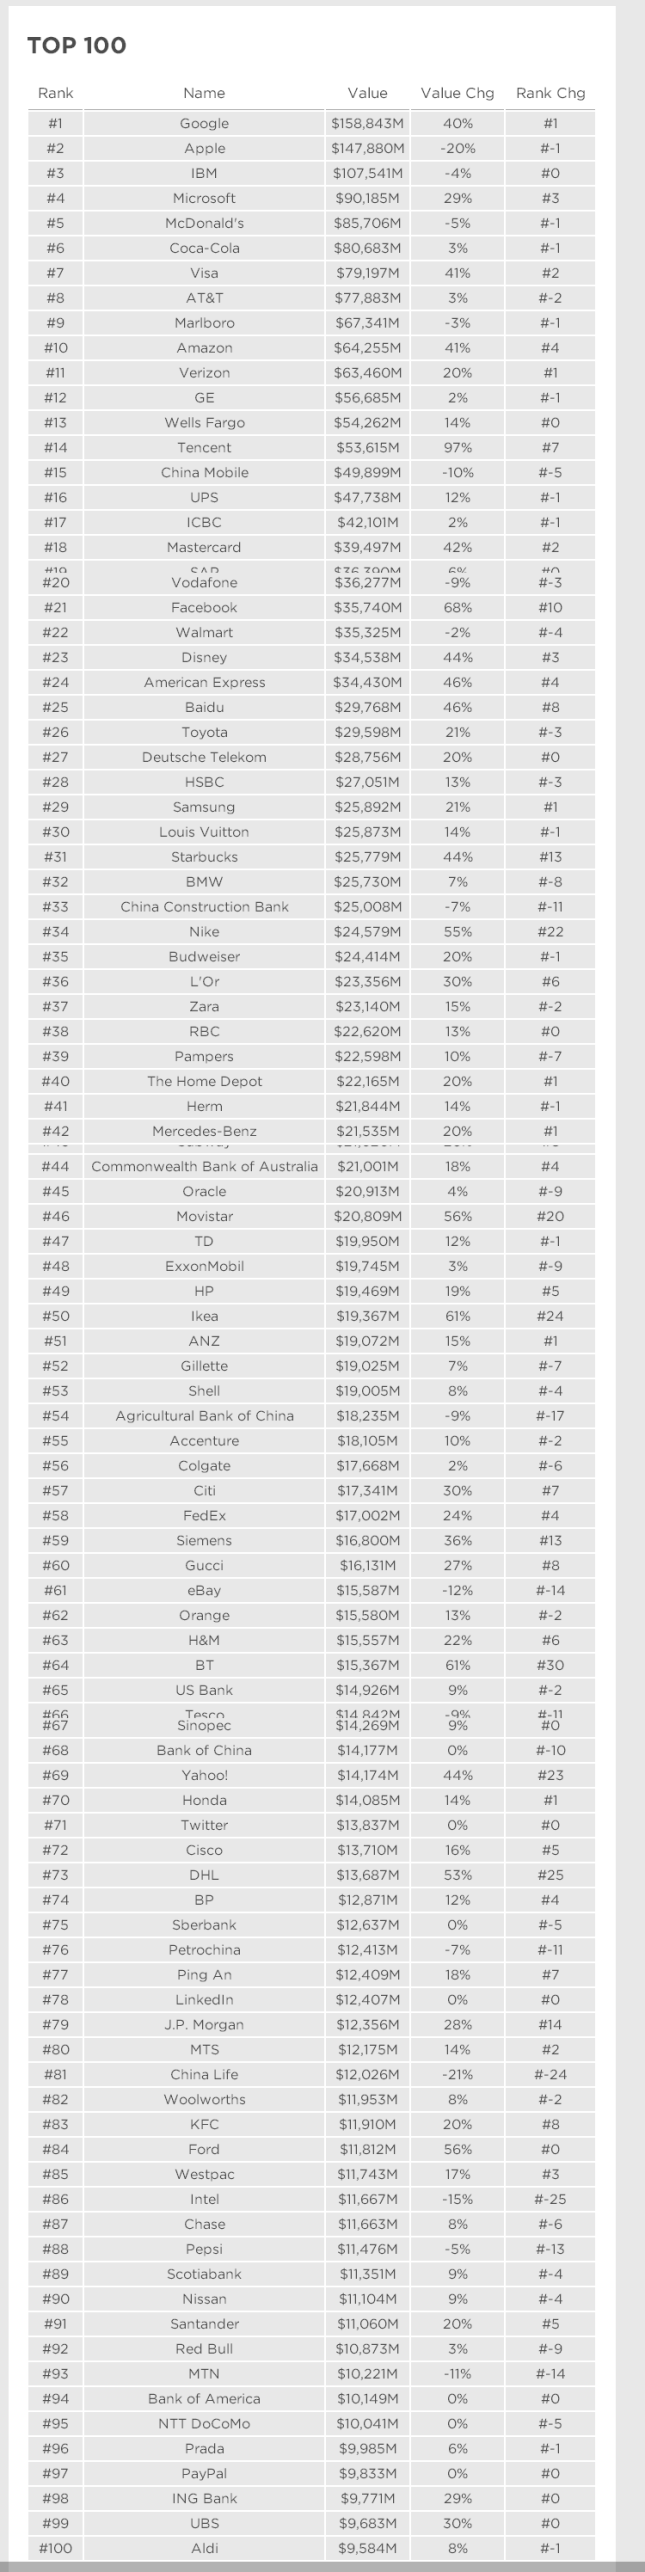 Top 100 Most Valuable Global Brand According to BrandZ 2014 Rankings